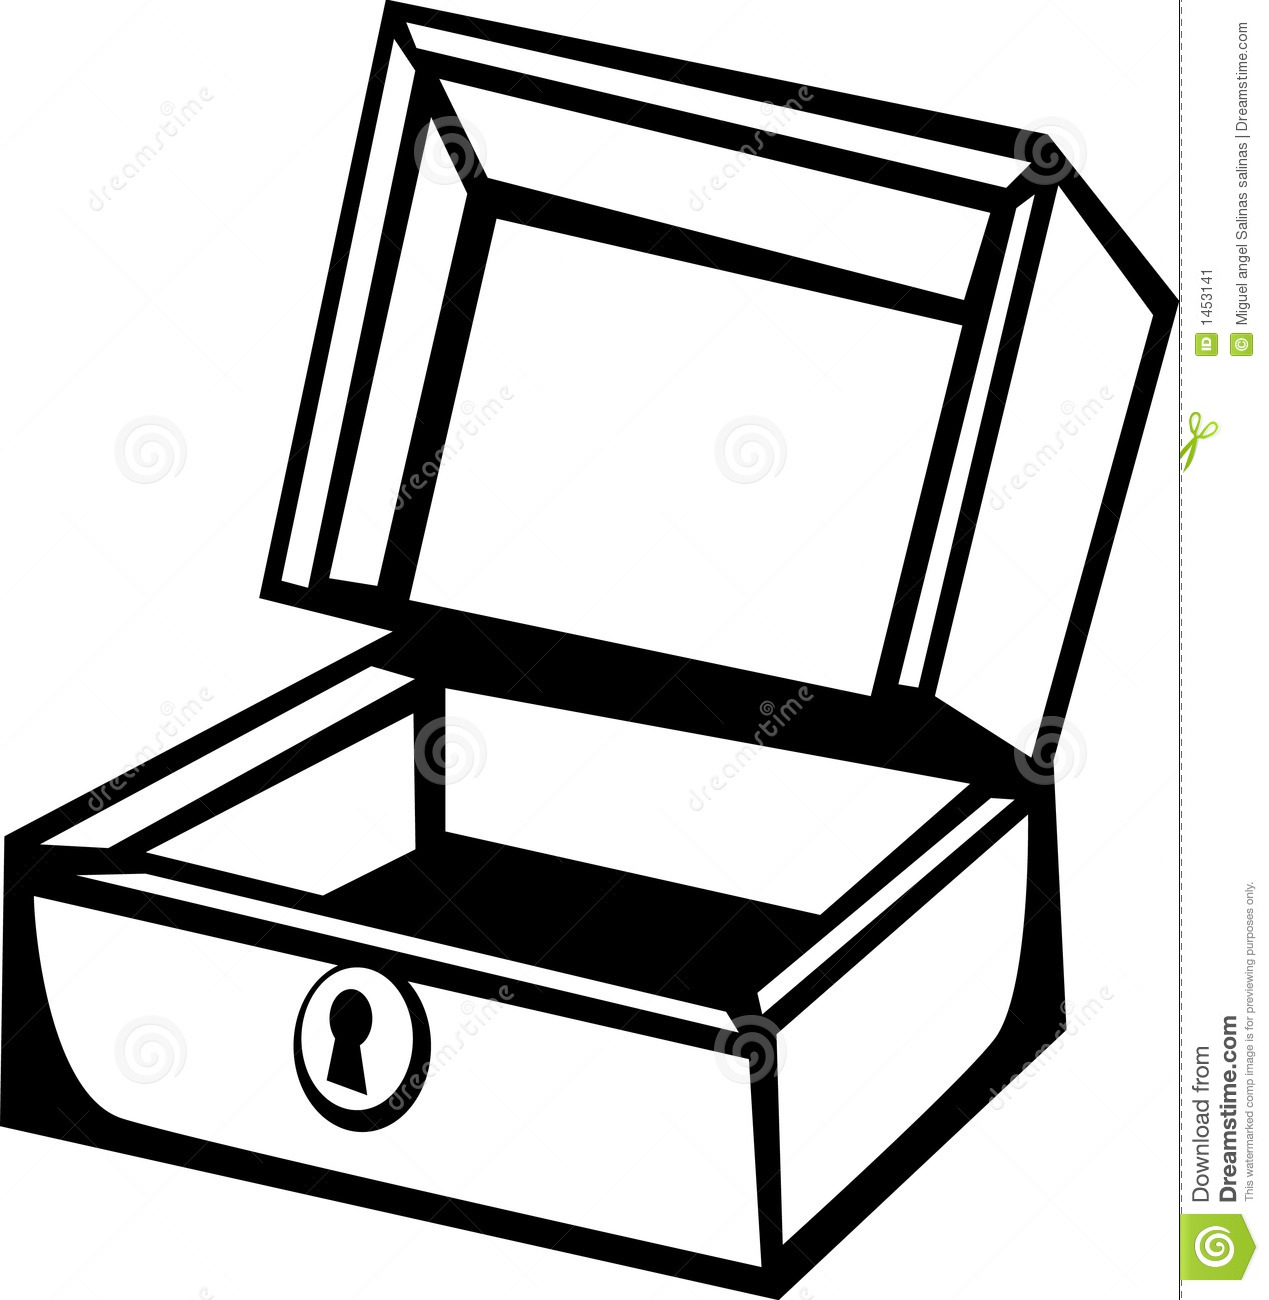 Wooden Box Vector Illustration Stock Vector